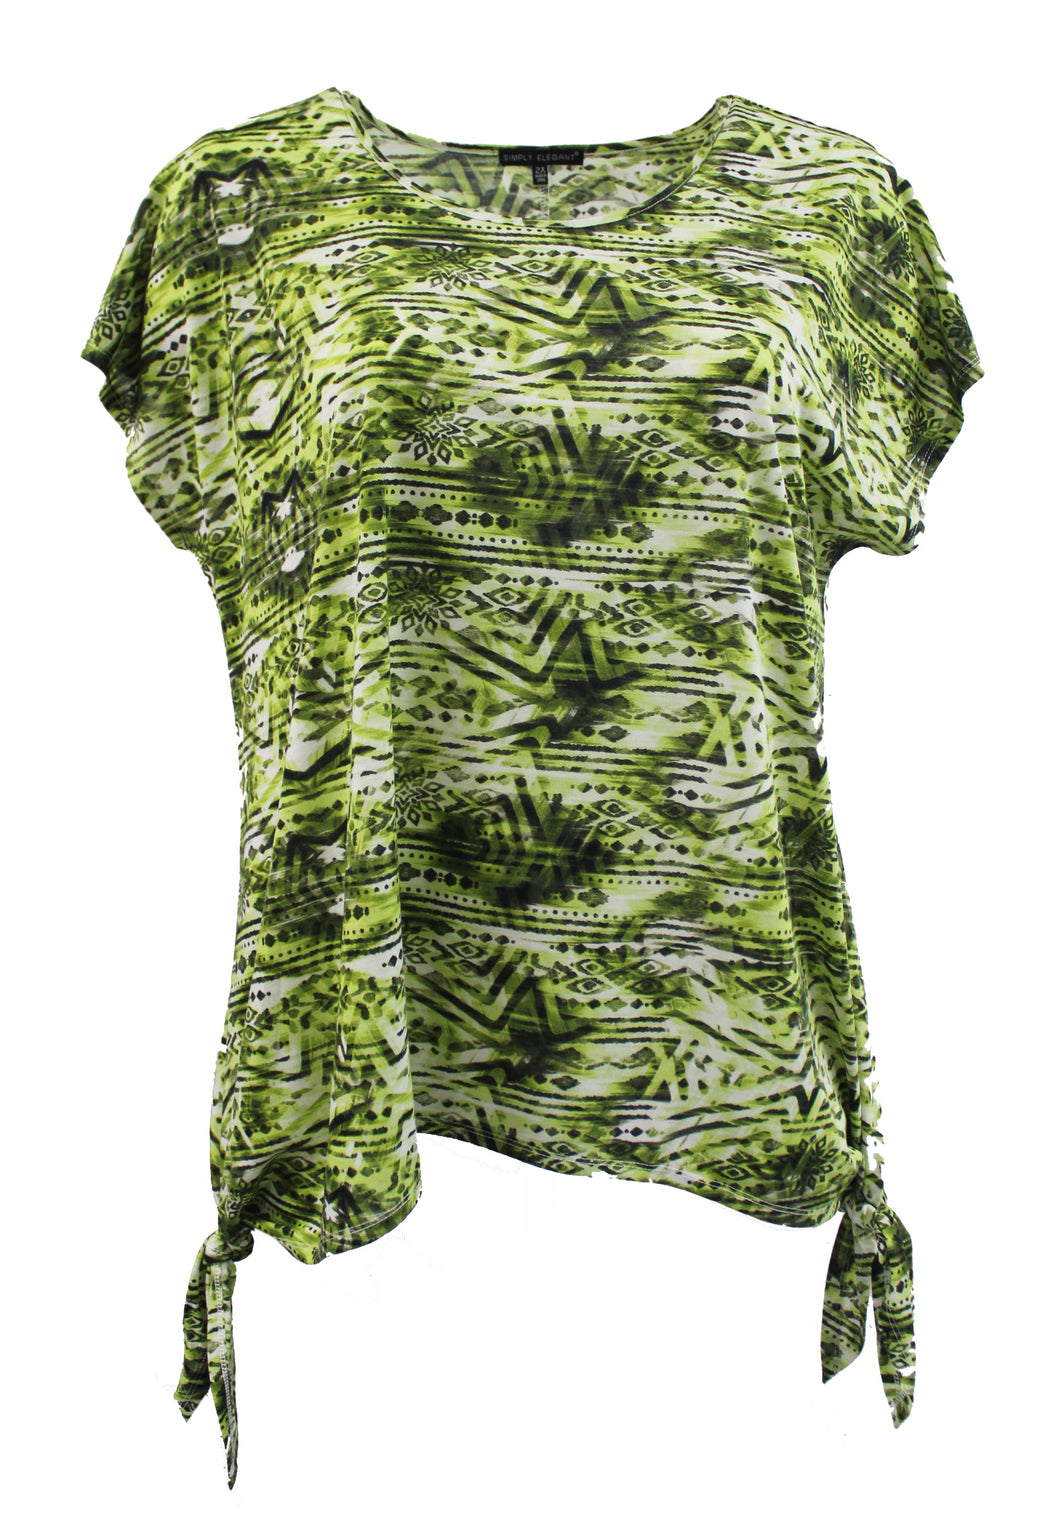 Green Aztec Tribal Print Fashion Tee w/ Tied Bottom Hem